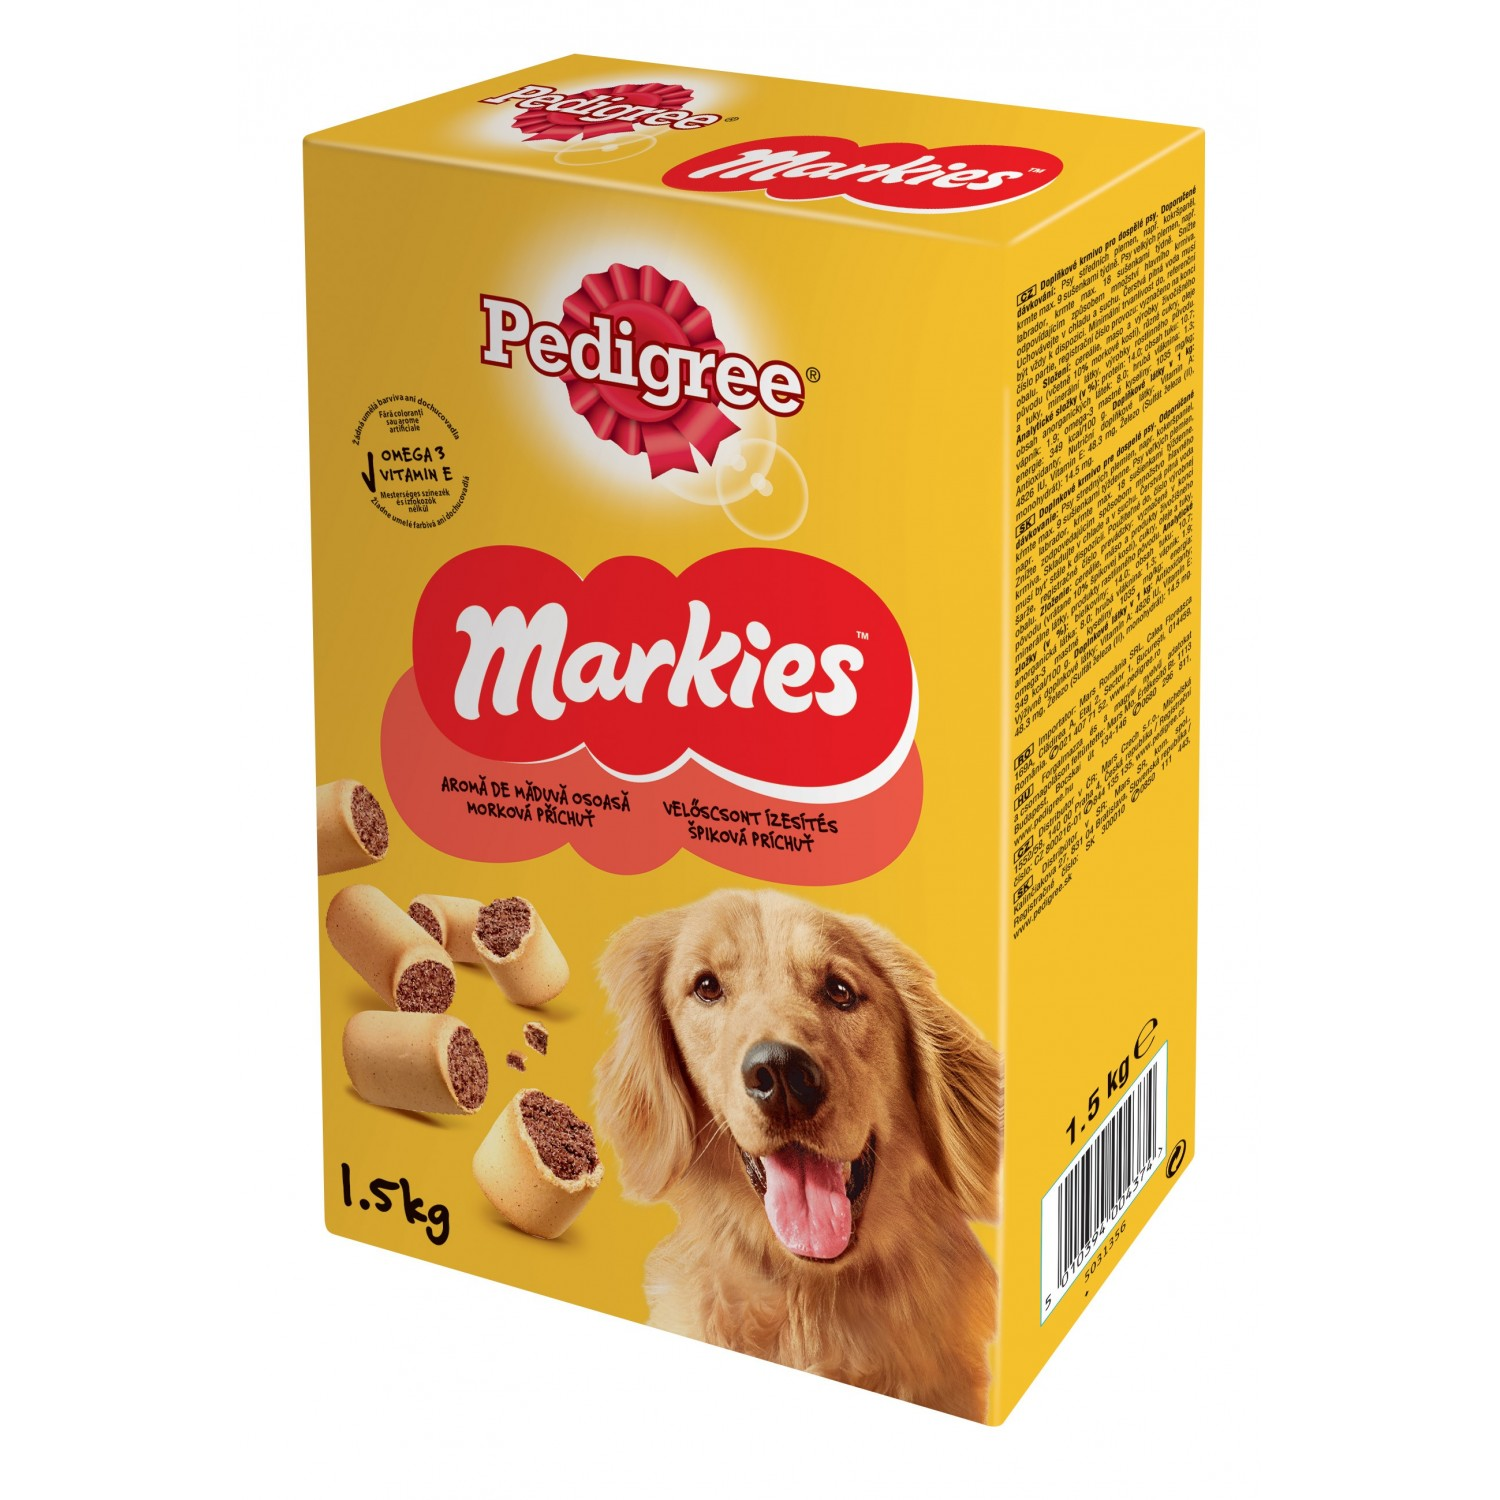 Pedigree - Pedigree Markies Original